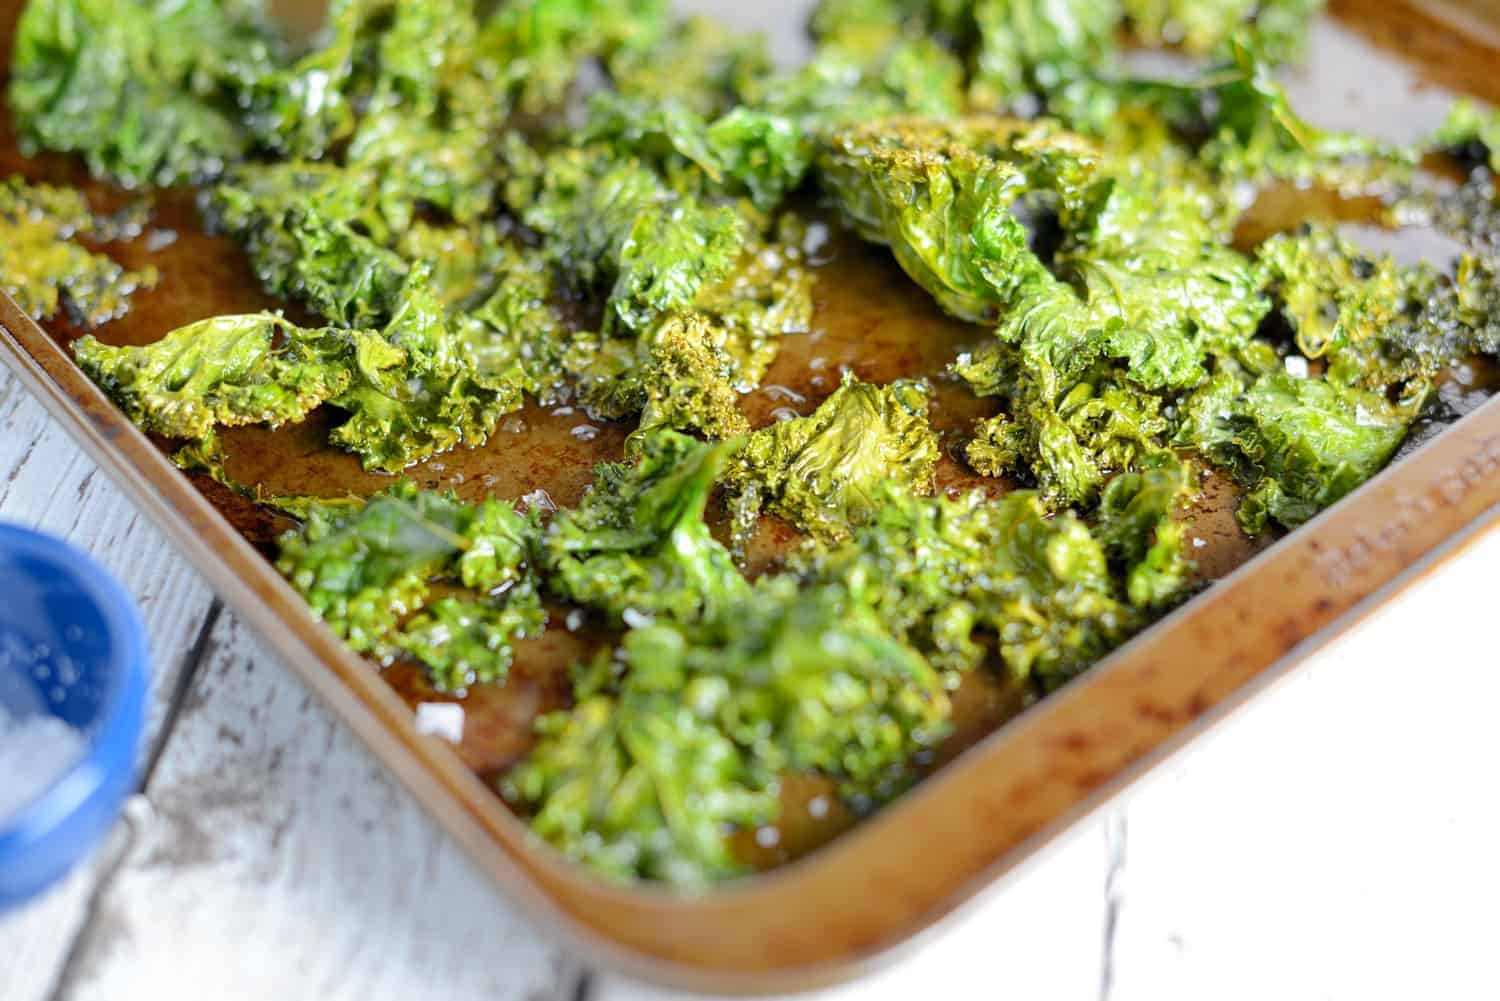 Kale Chips Recipe- olive oil, sea salt and 3 other creative add-ins! A tasty, easy, and healthy alternative to potato chips. www.savoryexperiments.com